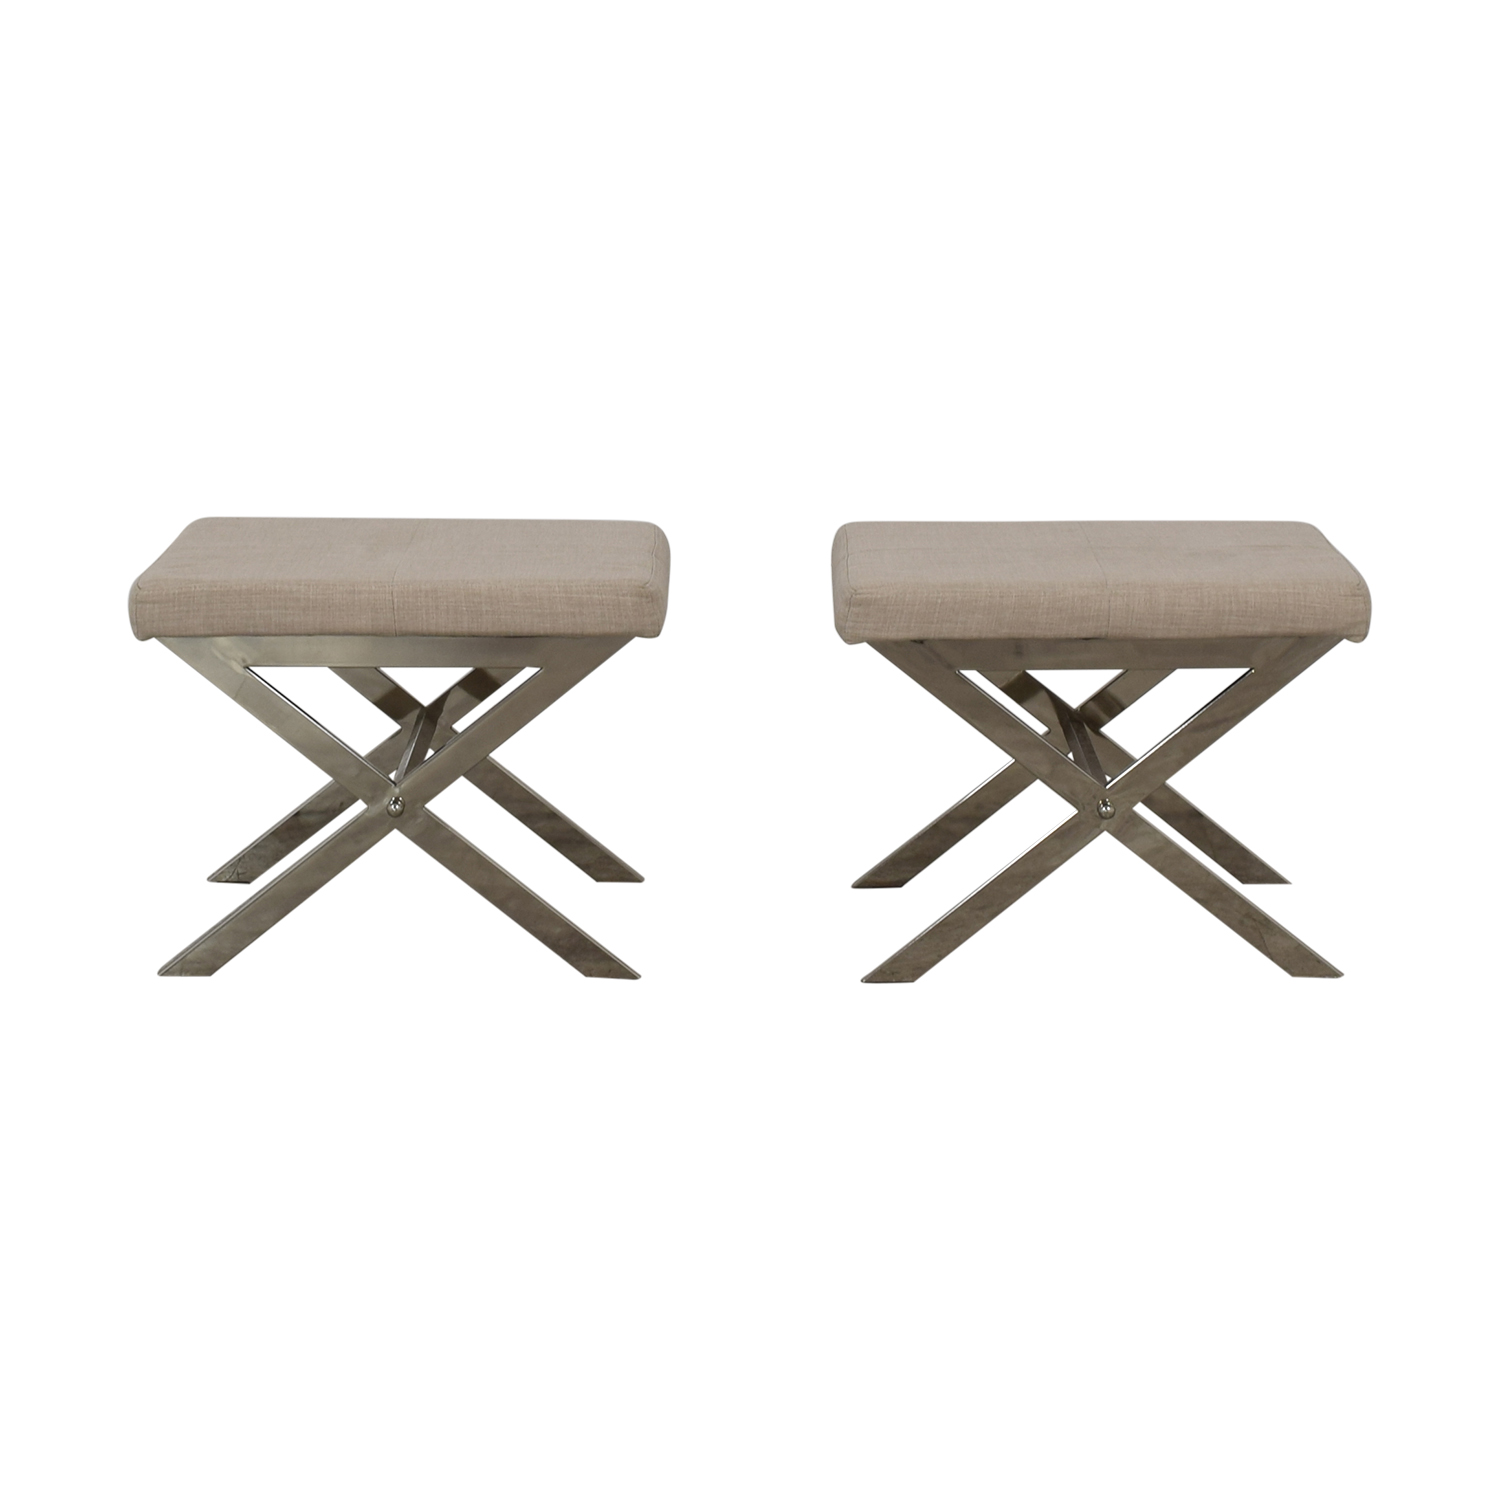 buy Wayfair Harter Vanity Stools Wayfair Stools